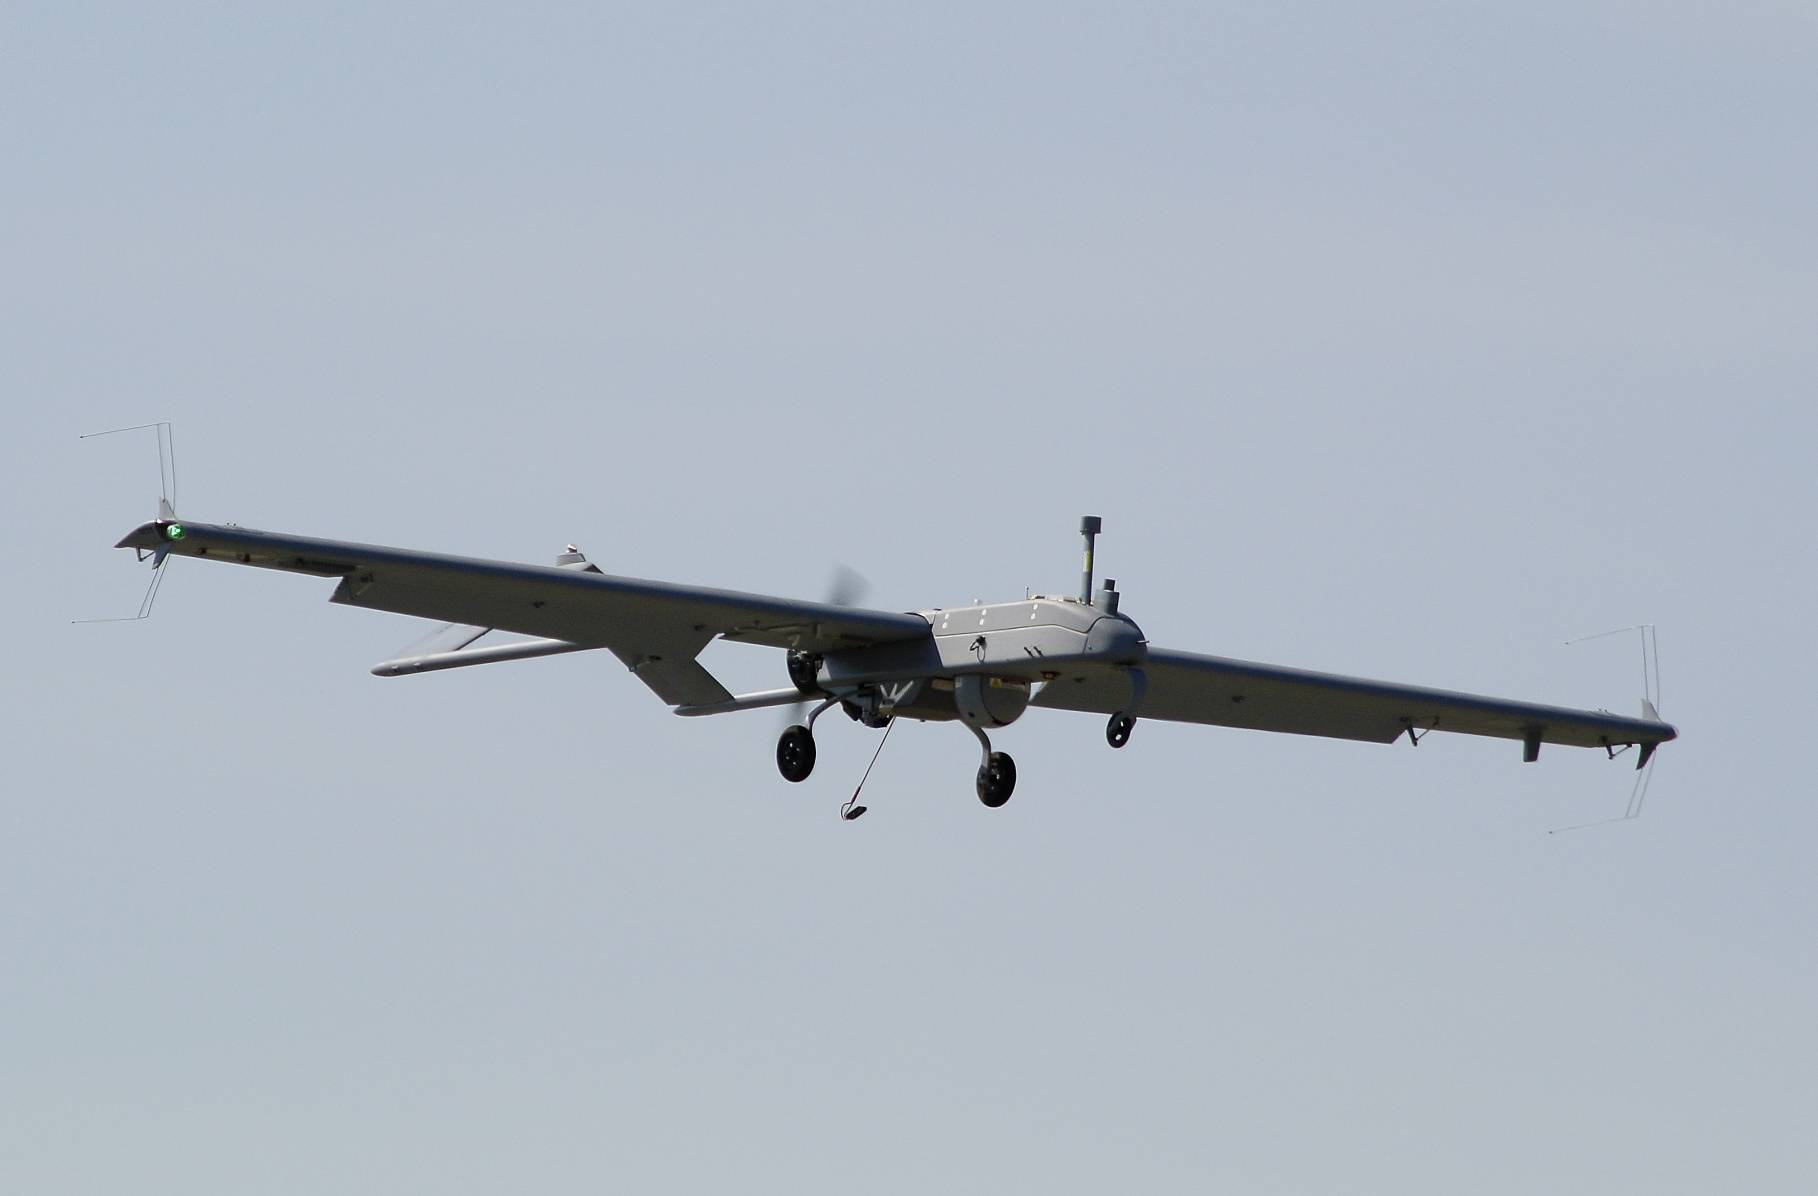 Mwss 371 274 Support Vmu 1 moreover Russian Kazan Ansat 2rc Light Attack as well Military Drones In Us Skies Could Pave Way For Thousands Of Civilian Ones likewise Mine ied detection moreover Remotely piloted vehicle. on unmanned ground combat vehicle